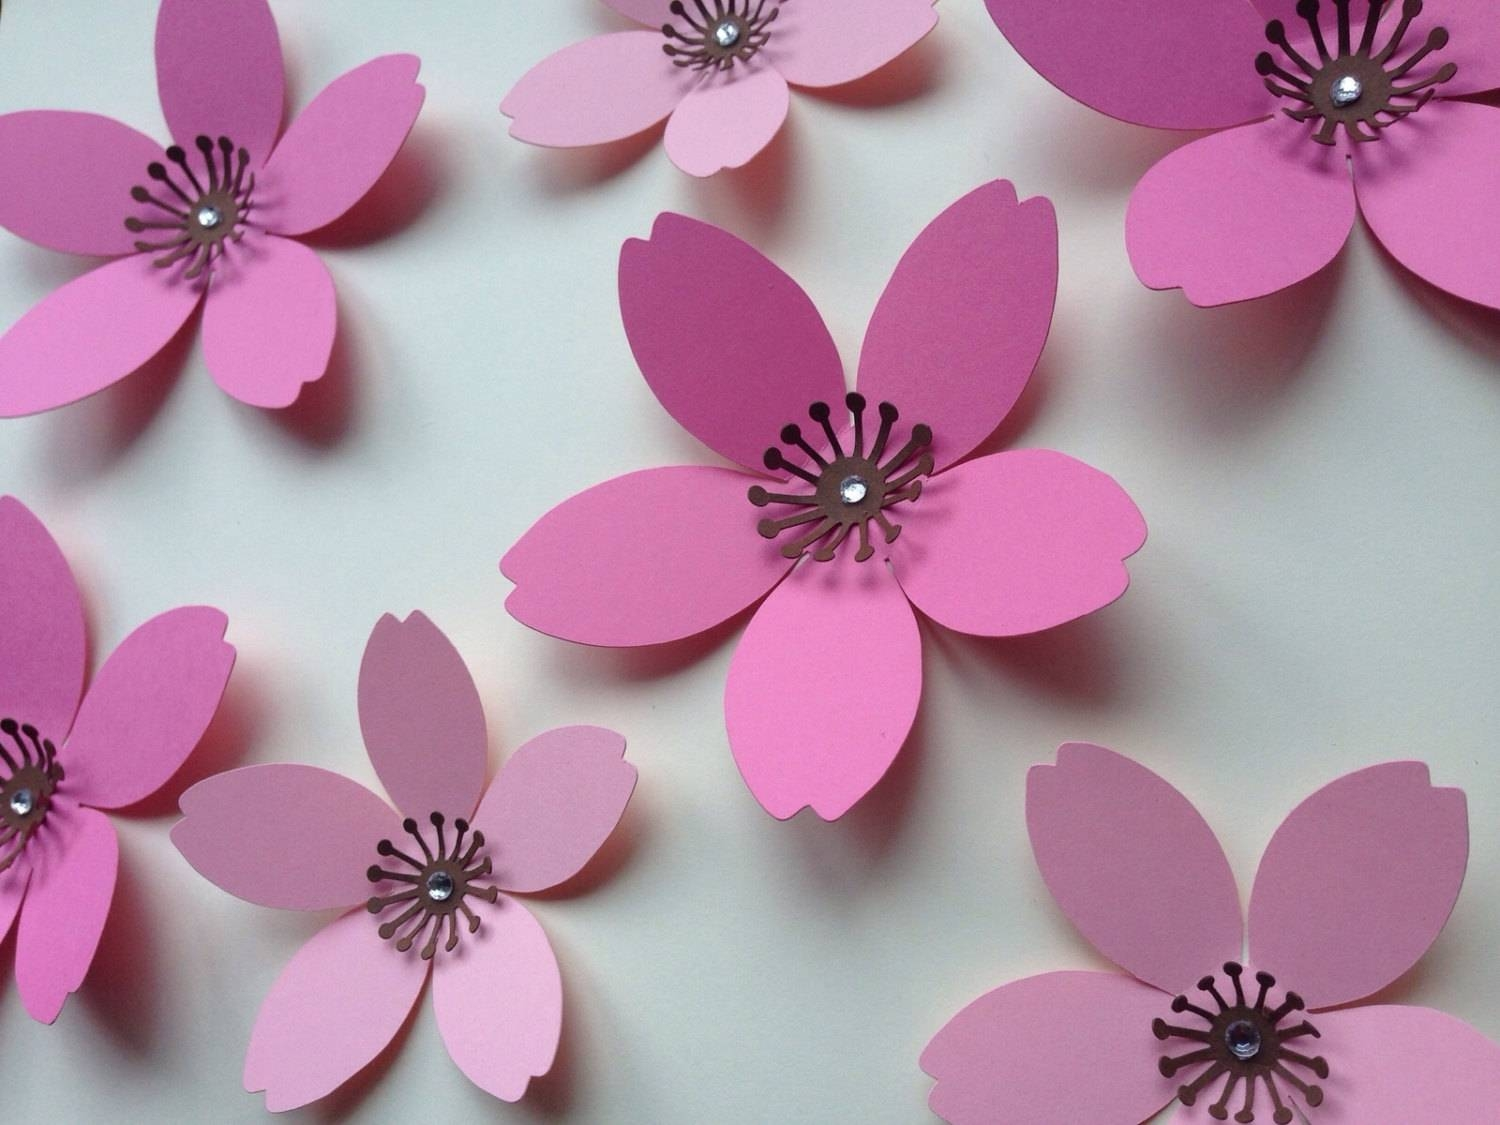 Paper Wall 3D Flower 3D Wall Art Paper Flower Wall Paper For Most Current 3D Flower Wall Art (View 14 of 20)